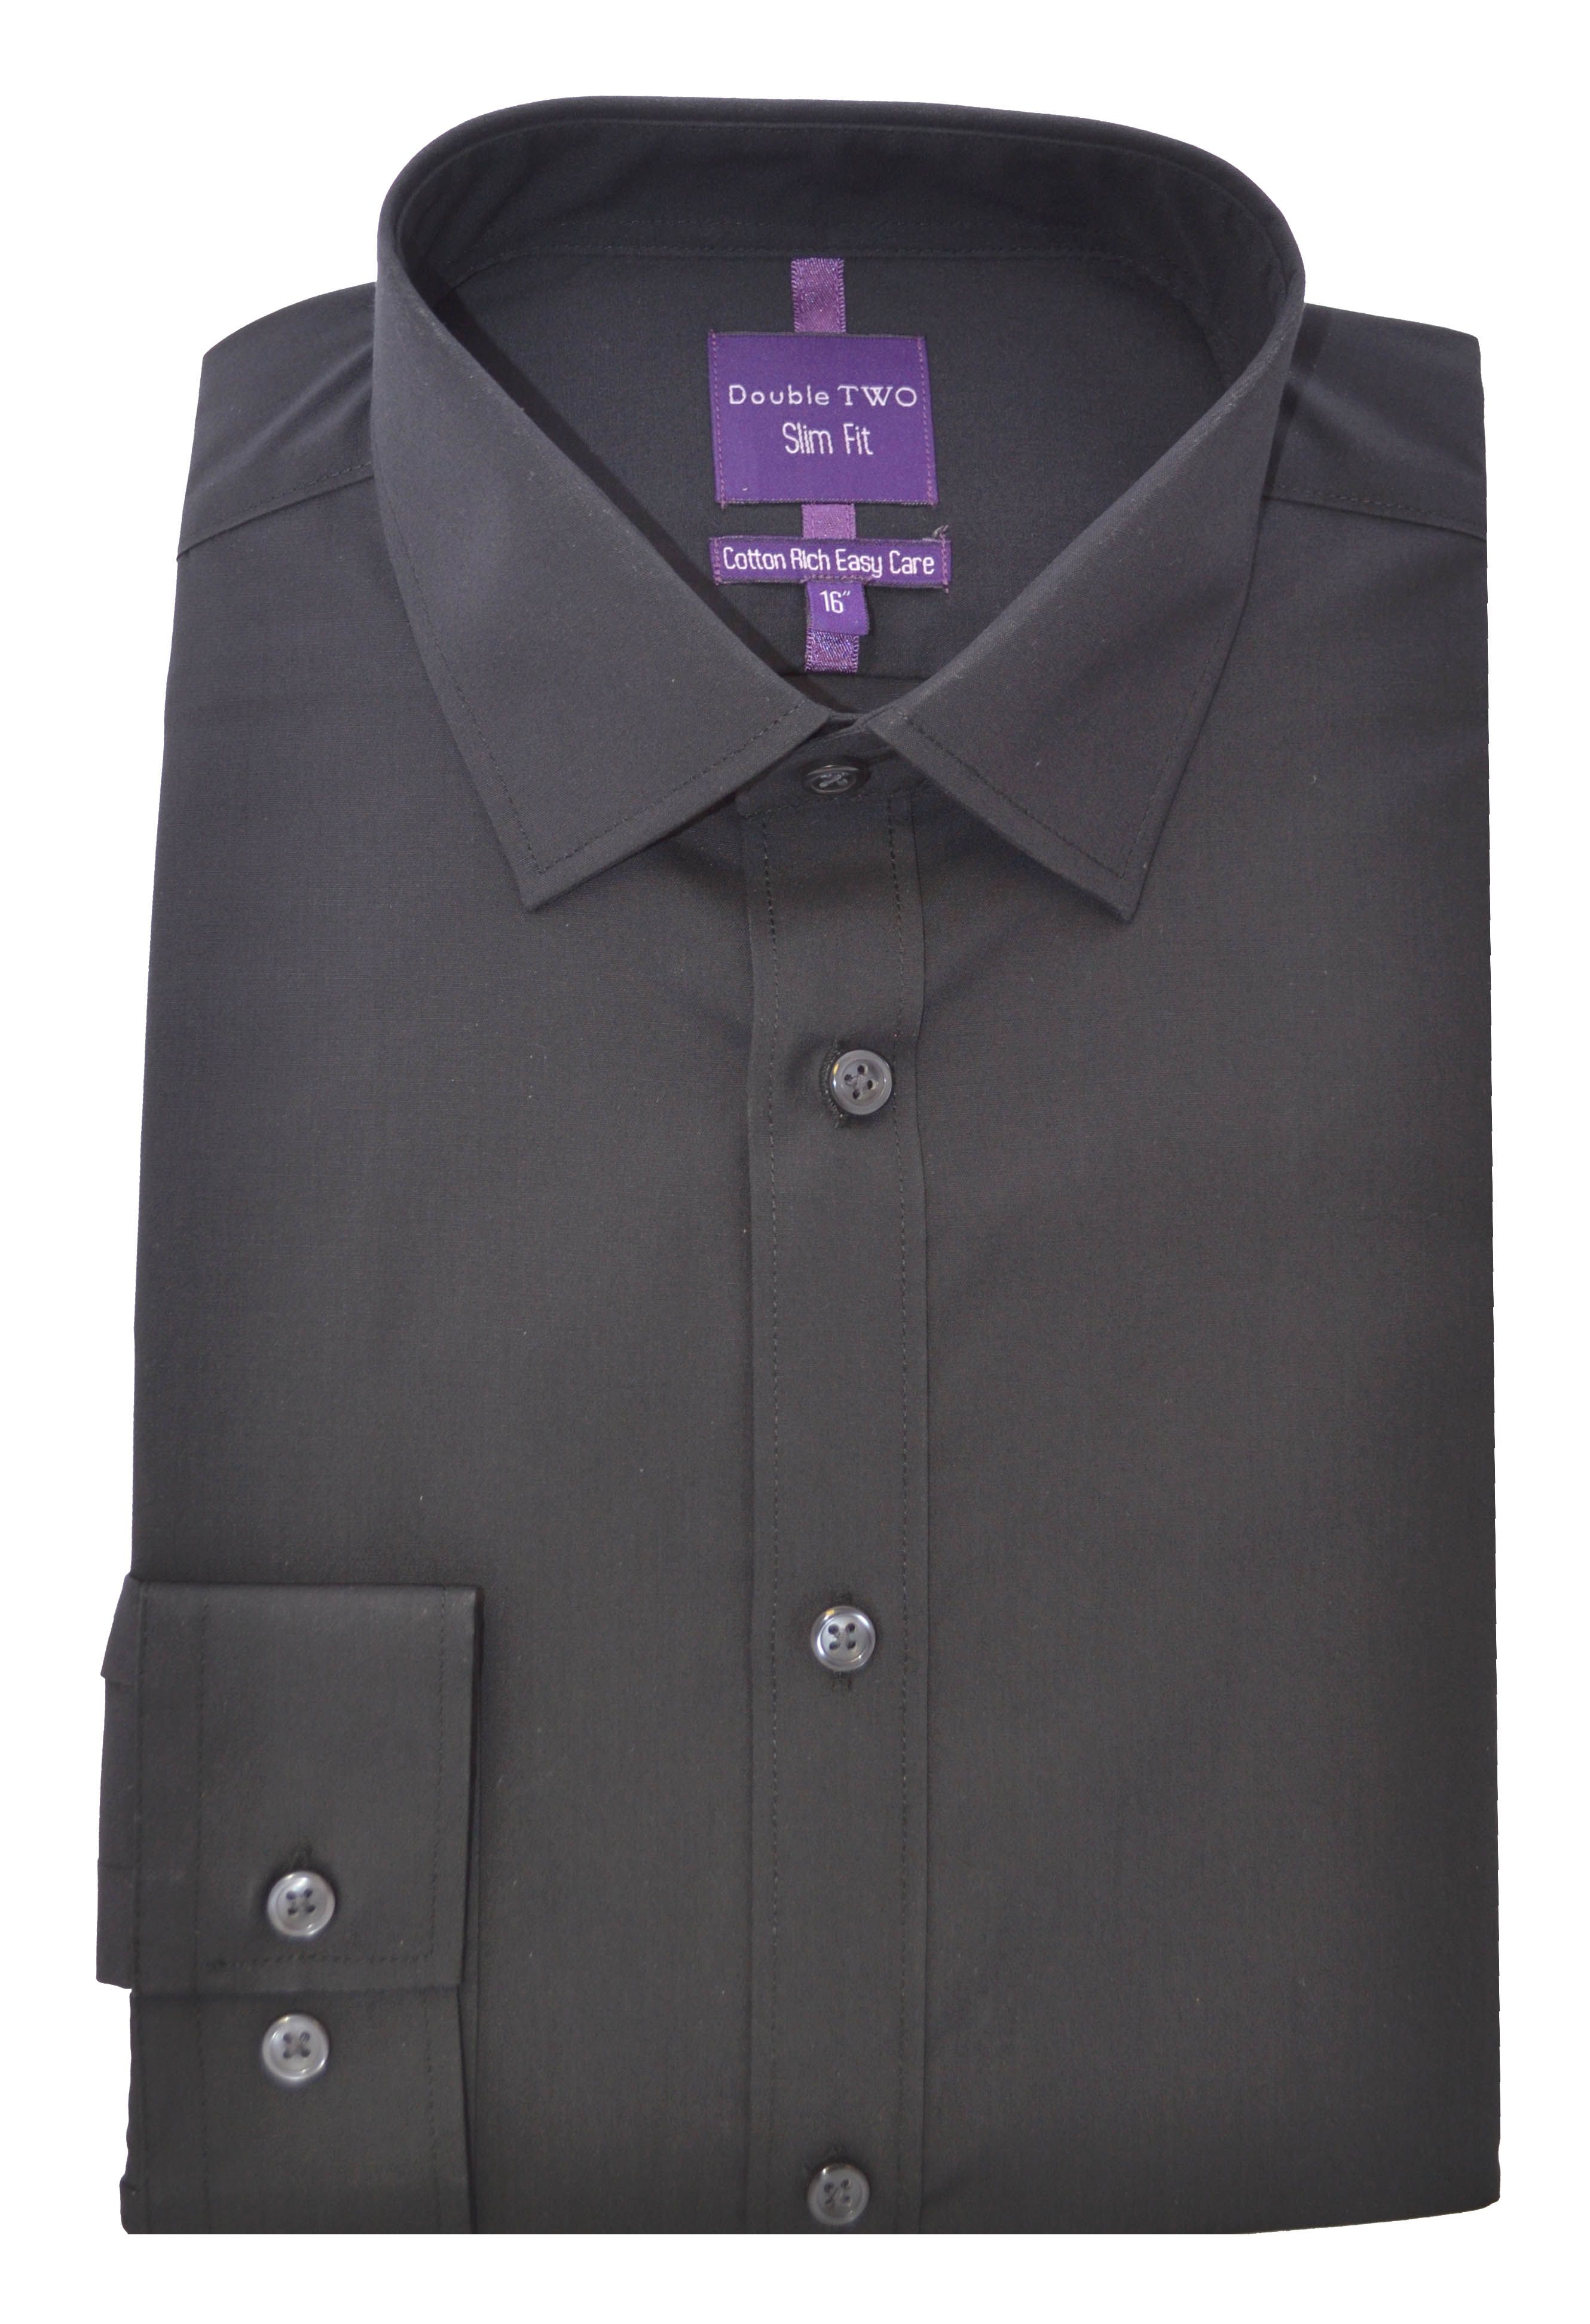 Double Two Men's Double TWO Slim Fit Formal Shirt, Black